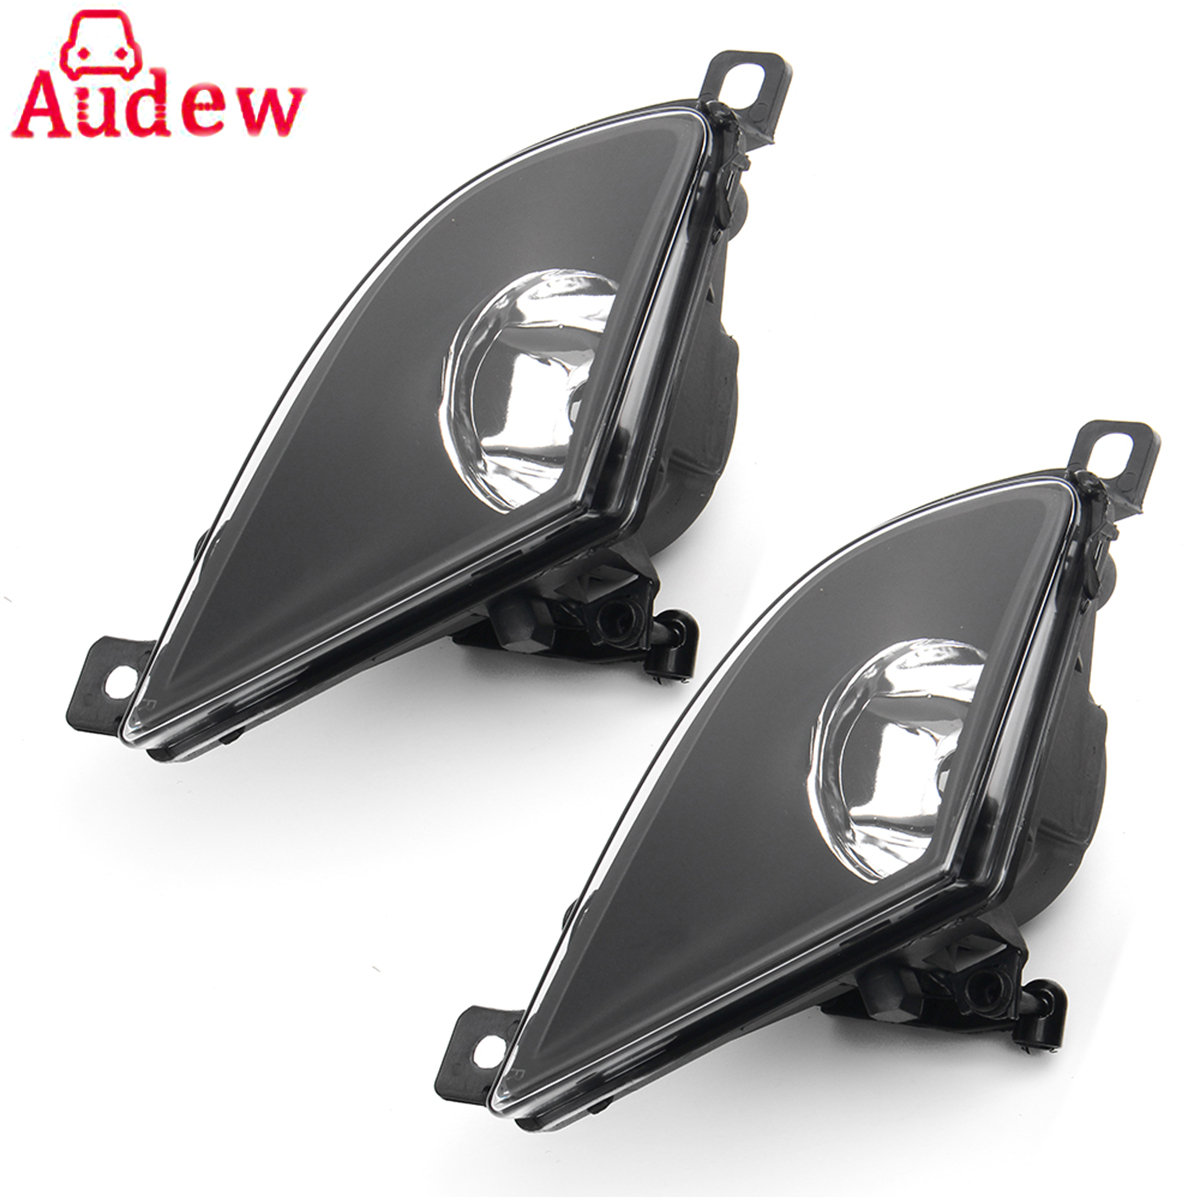 2Pcs Car Headlight Fog Light Assembly for BMW 5 SERIES E60 528i 528xi 528i 535i 535xi 535i 550i 2008-2011 2pcs right left fog light lamp for b mw e39 5 series 528i 540i 535i 1997 2000 e36 z3 2001 63178360575 63178360576